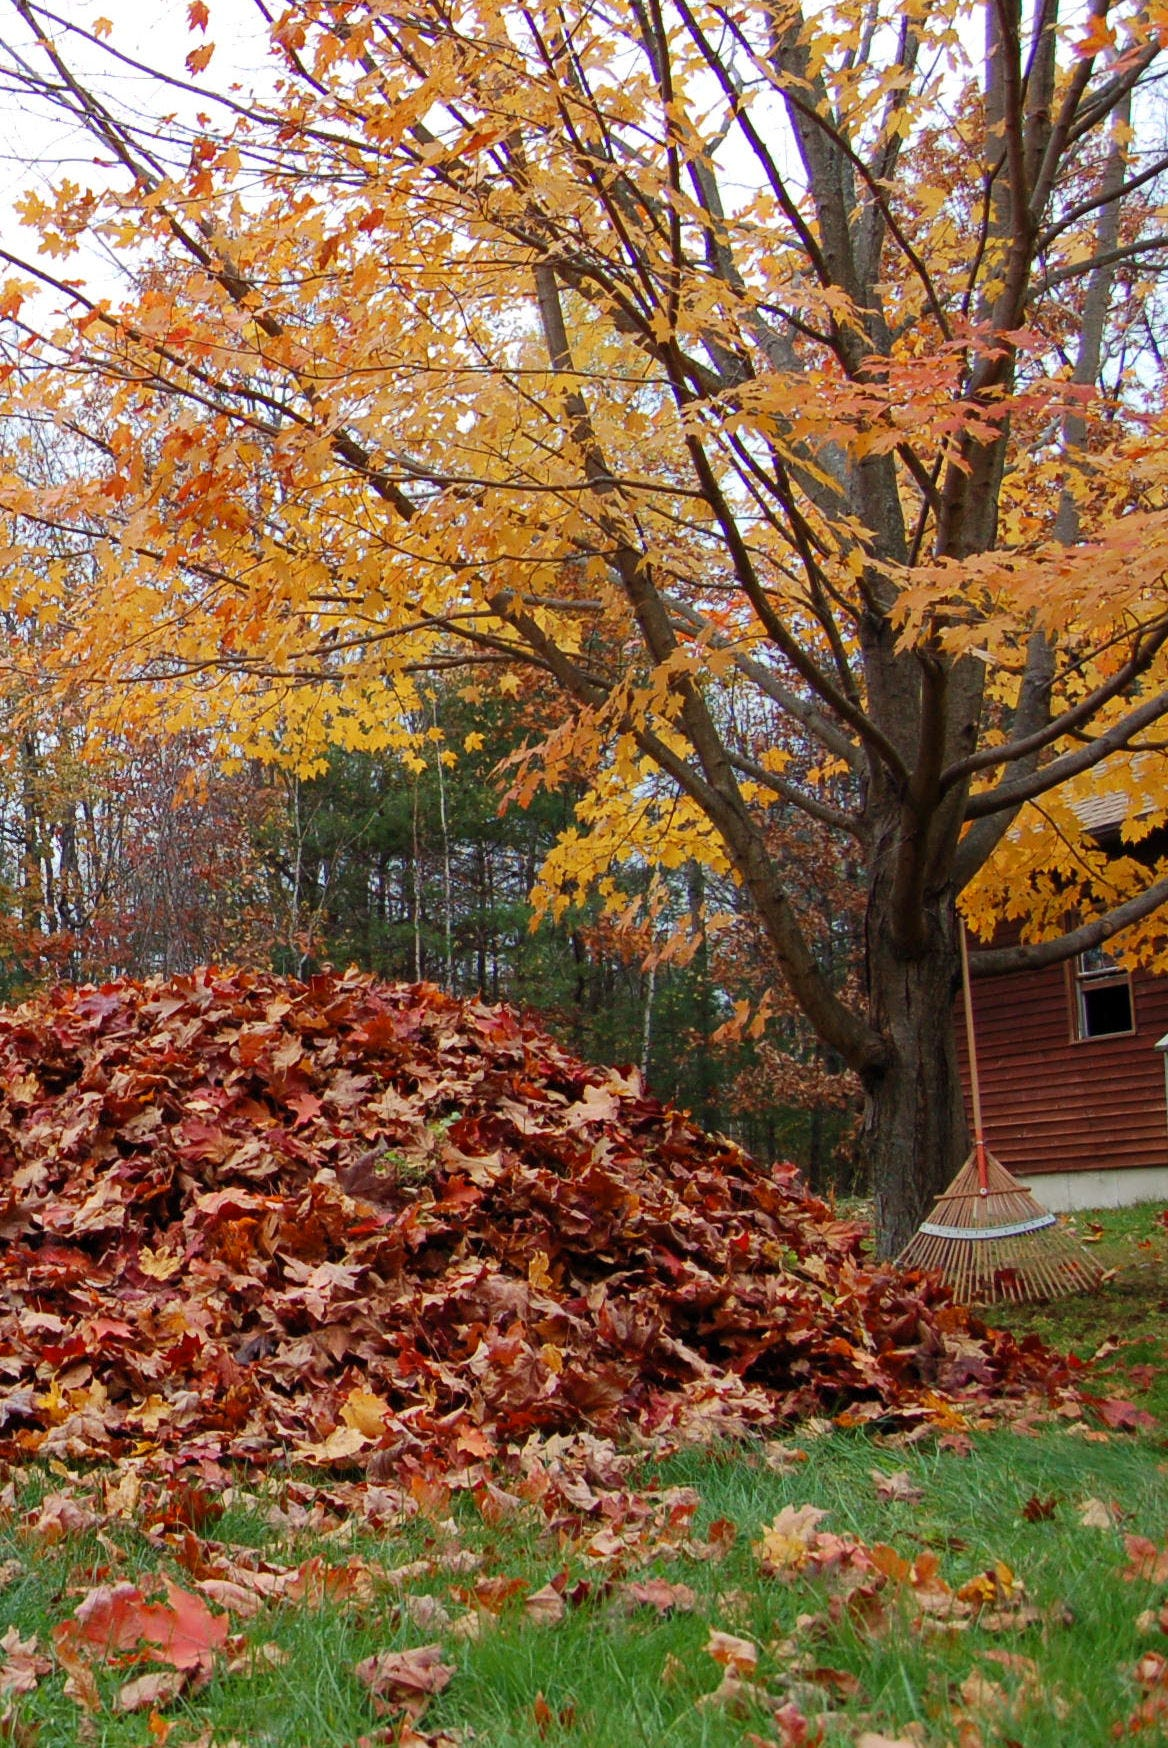 Organic Gardening: This autumn, try using leaves where they fall